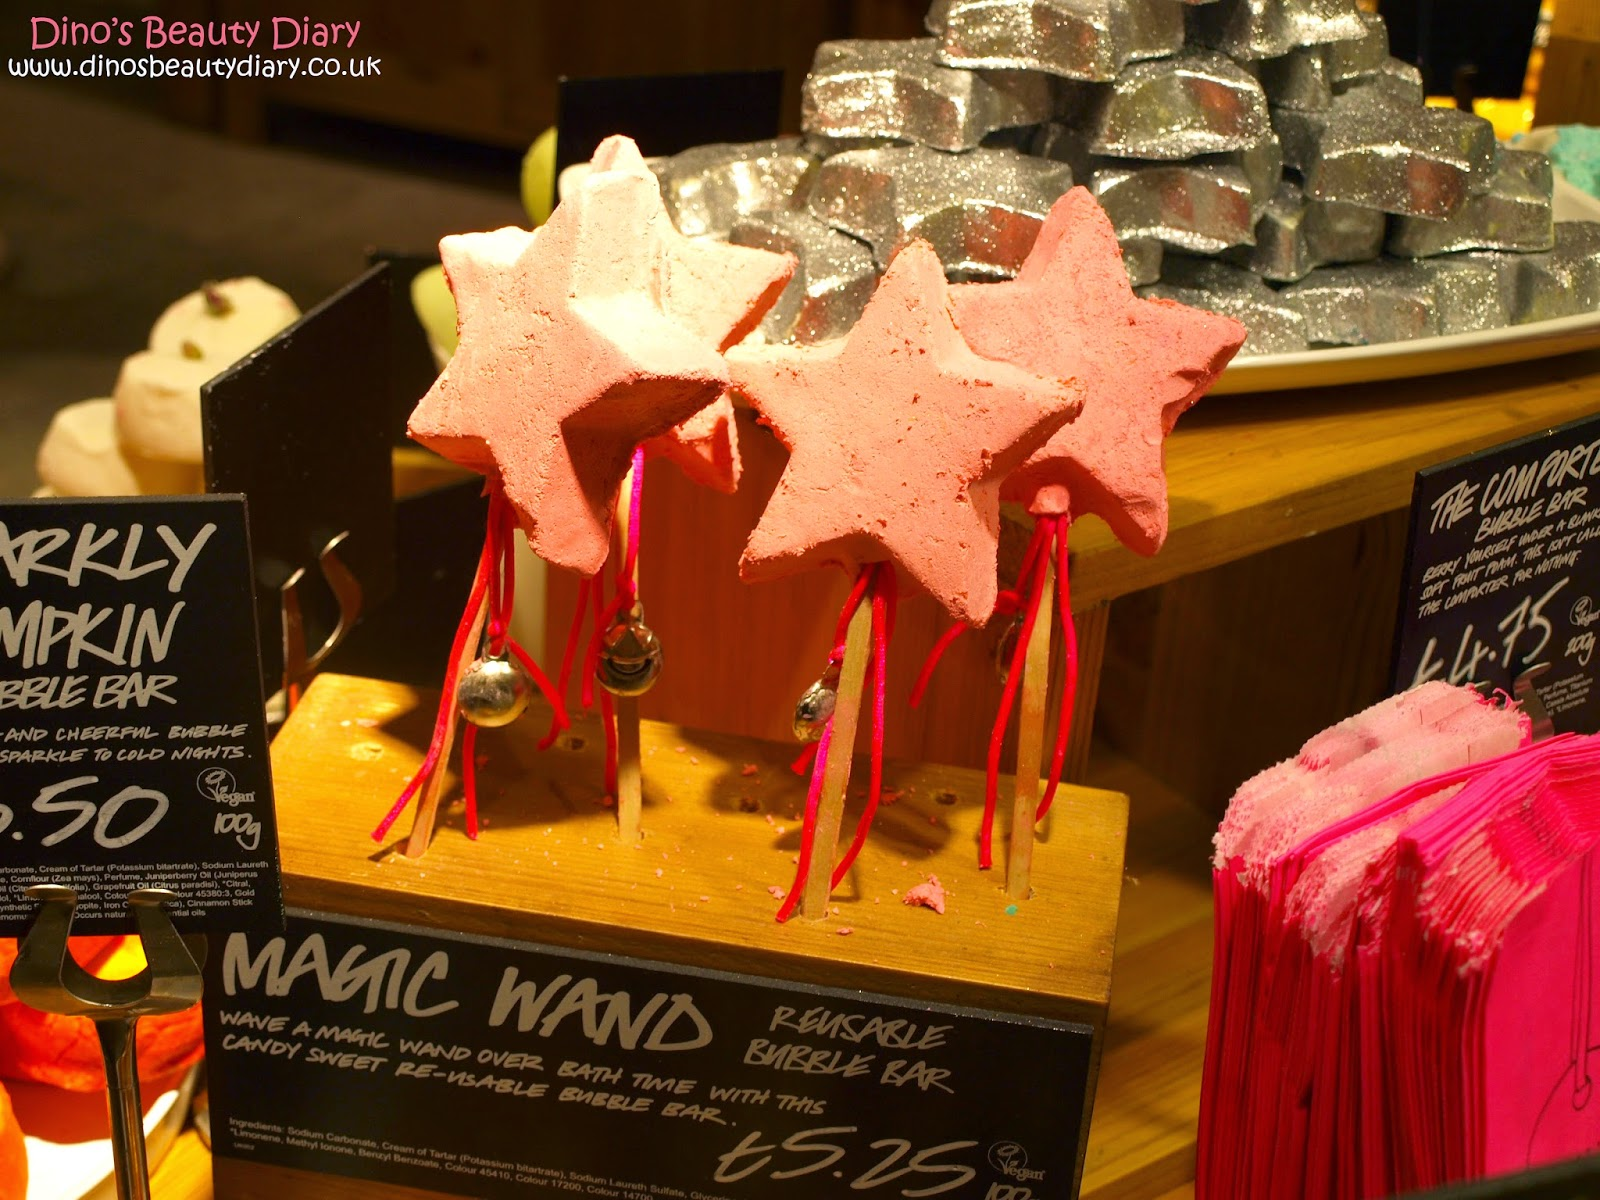 Dino's Beauty Diary - Lush Nottingham Bloggers Event - magic wand bubble bars